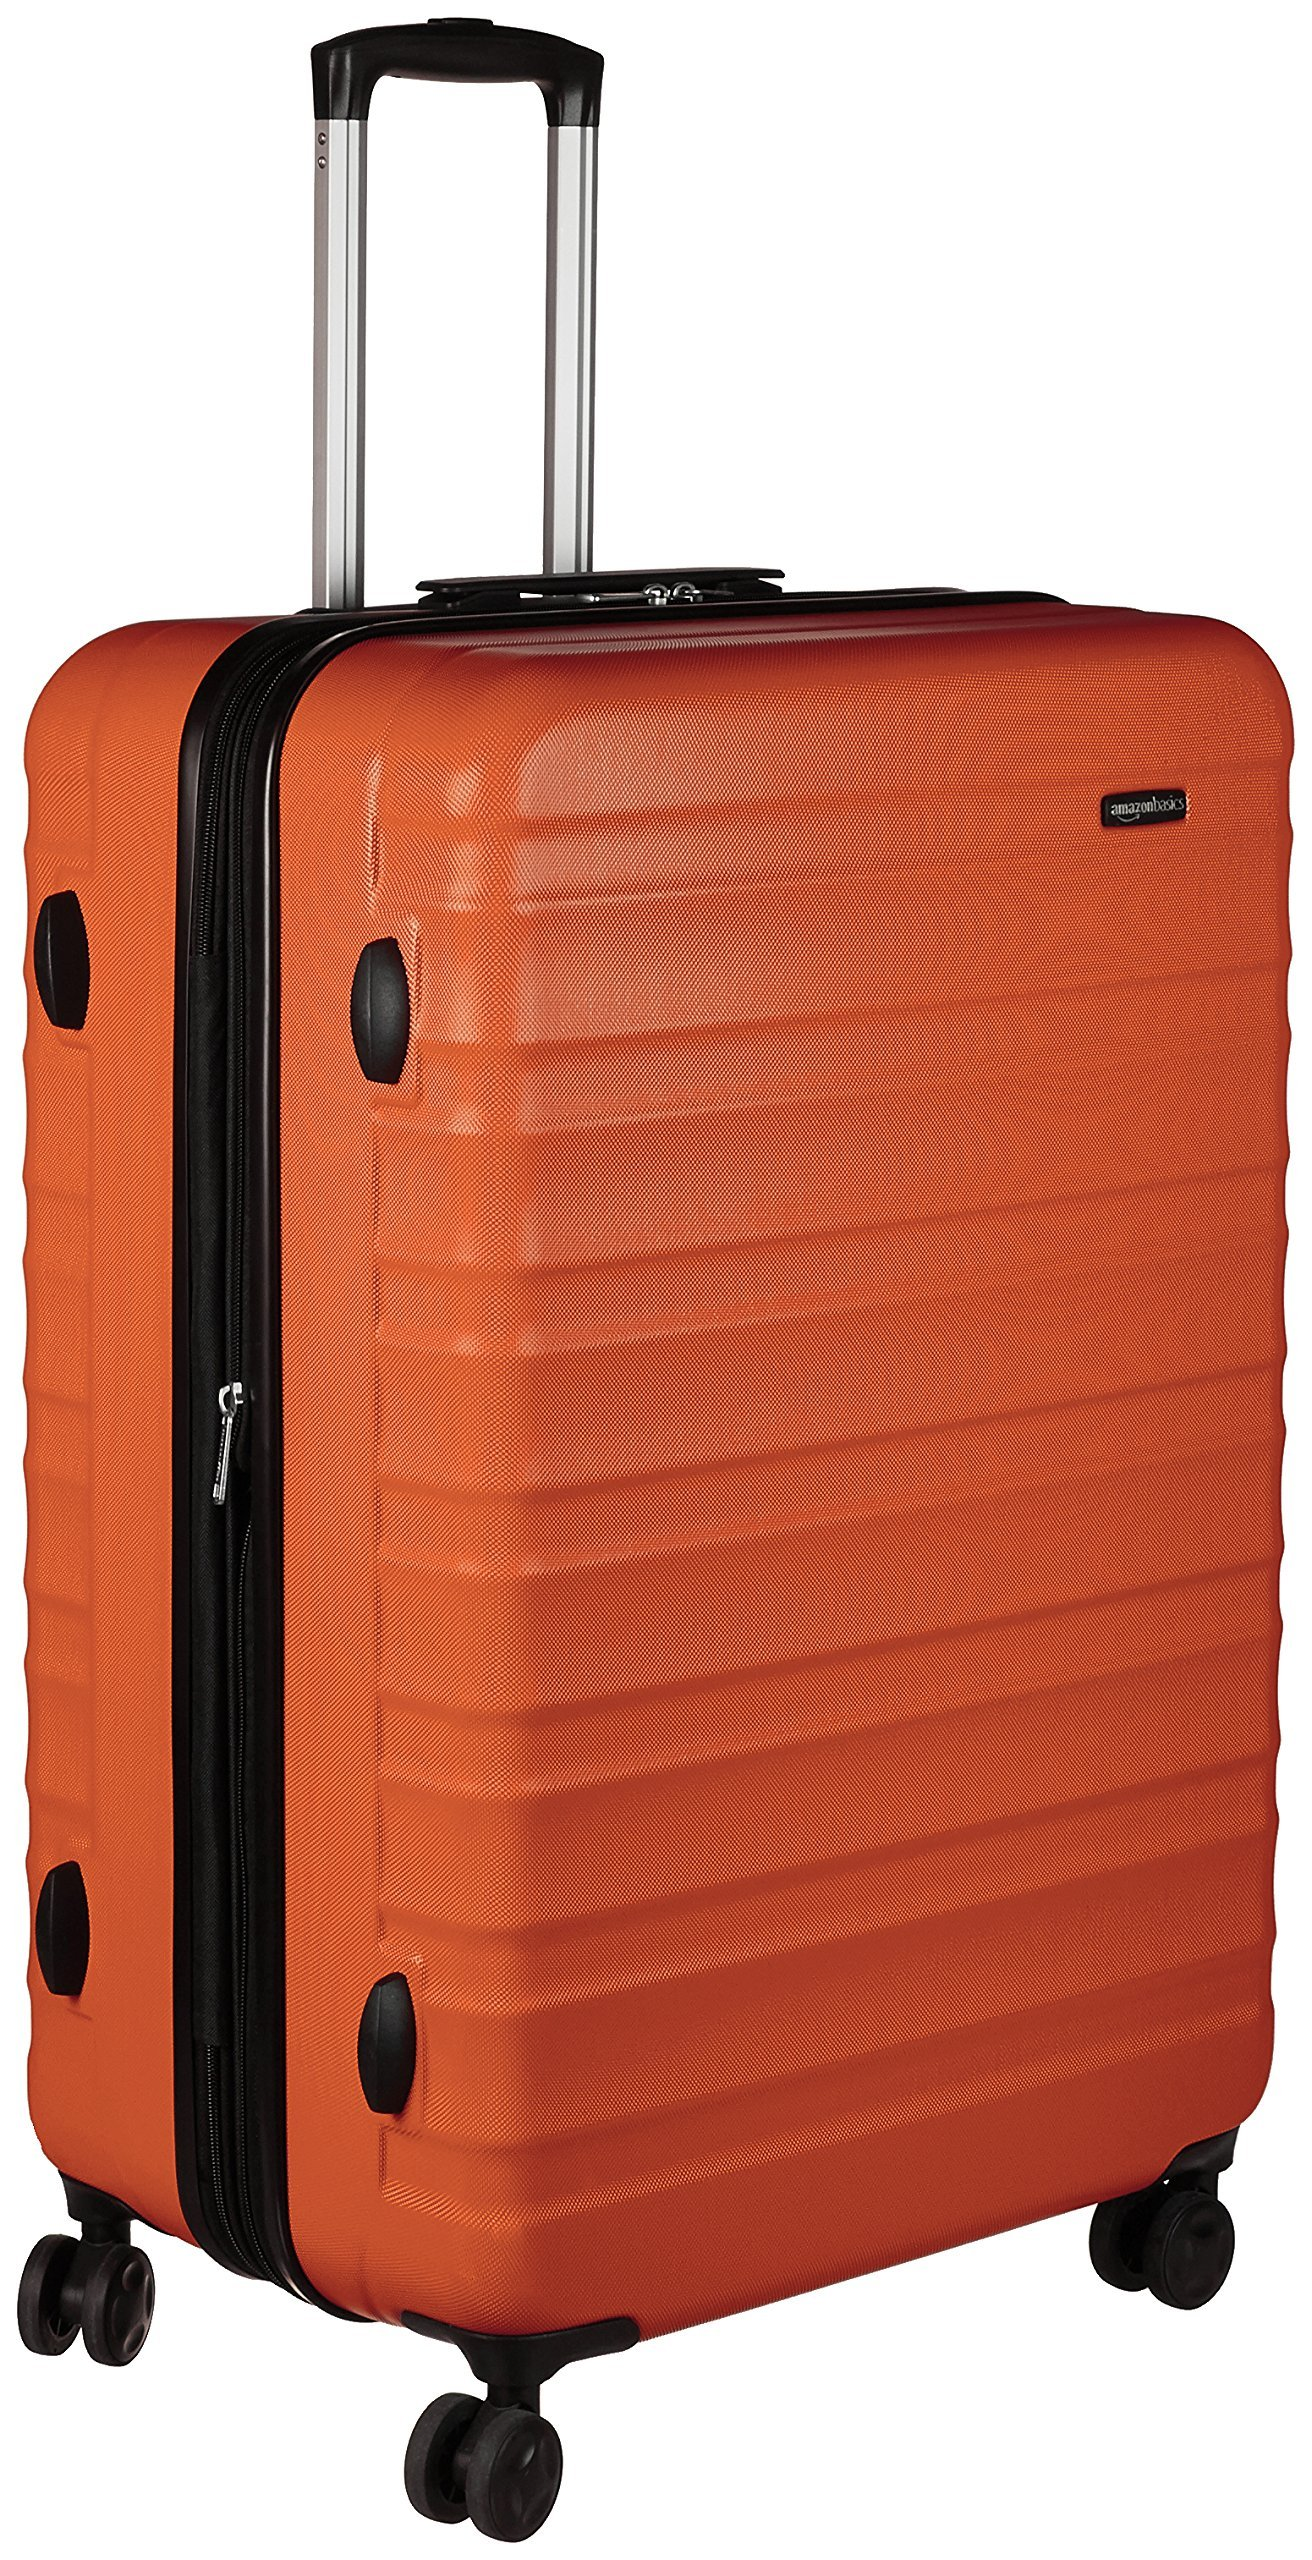 AmazonBasics Hardside Spinner Luggage - 28-inch, Burnt Orange product image